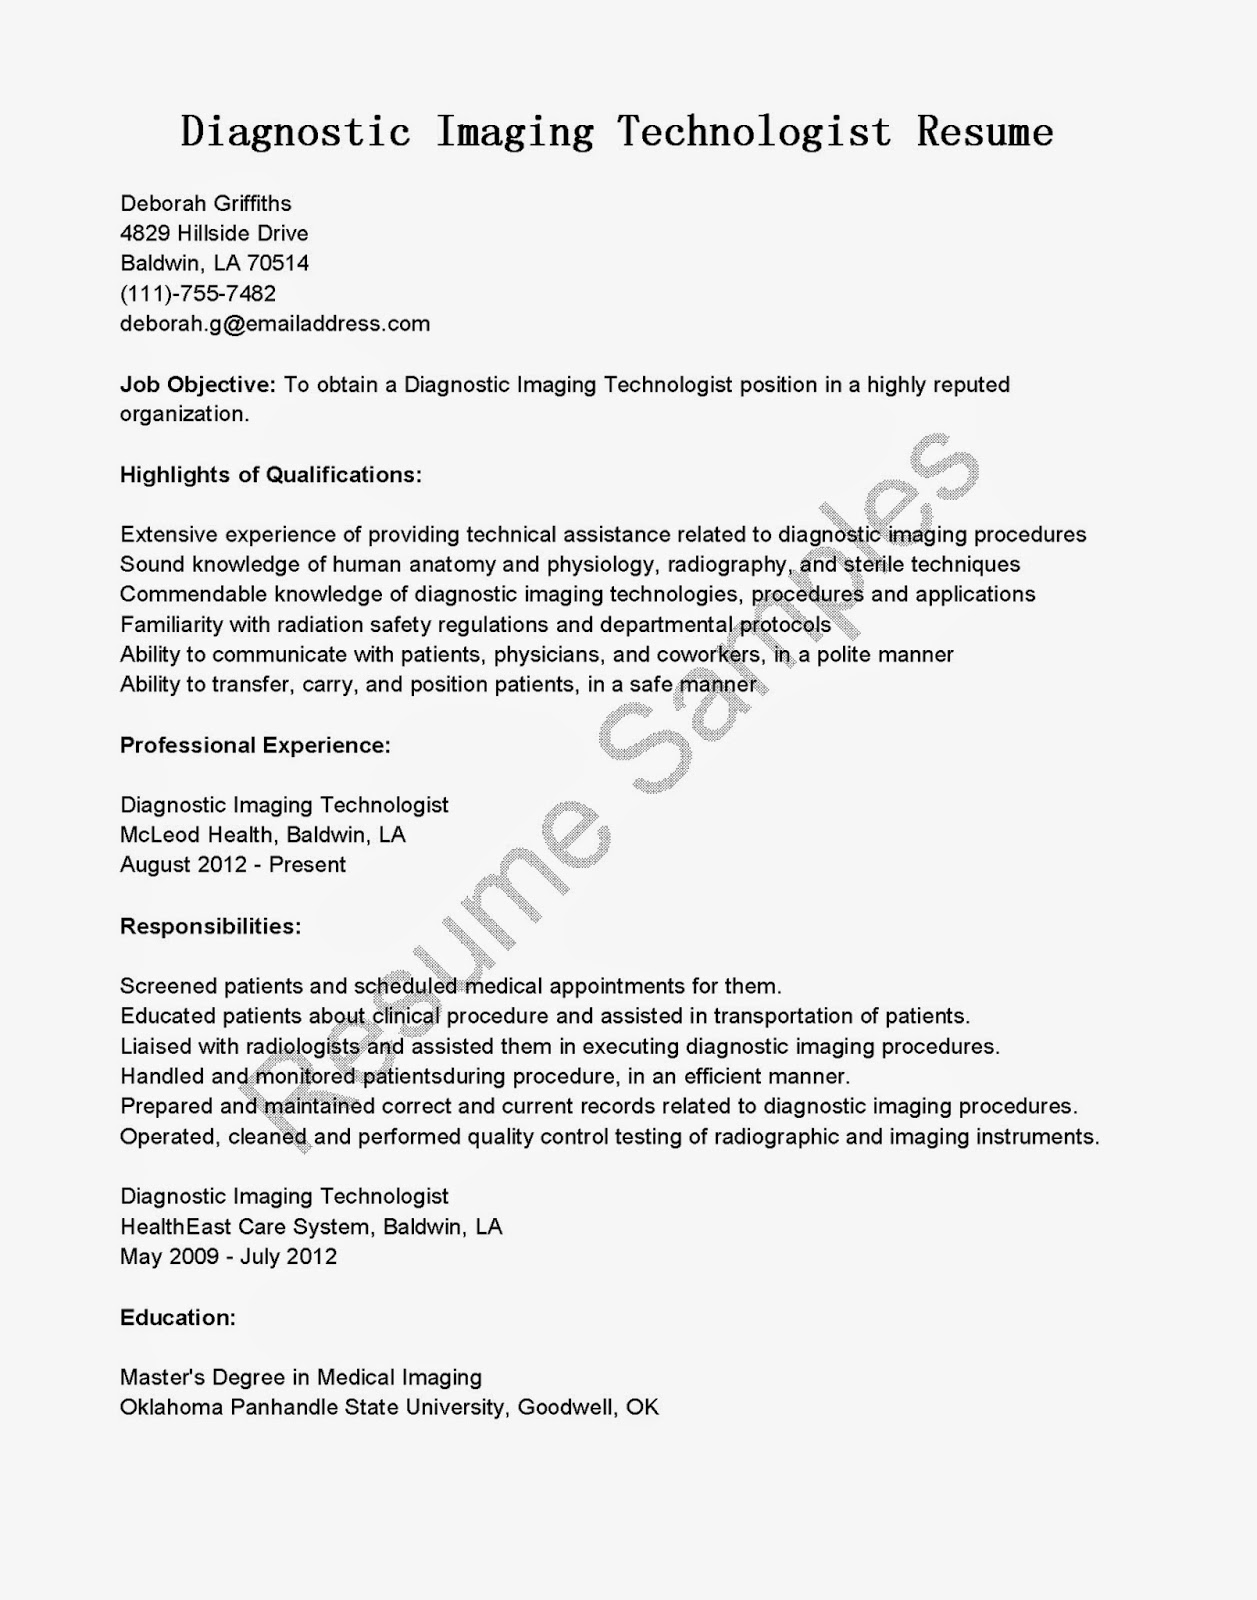 Resume Samples Diagnostic Imaging Technologist Resume Sample